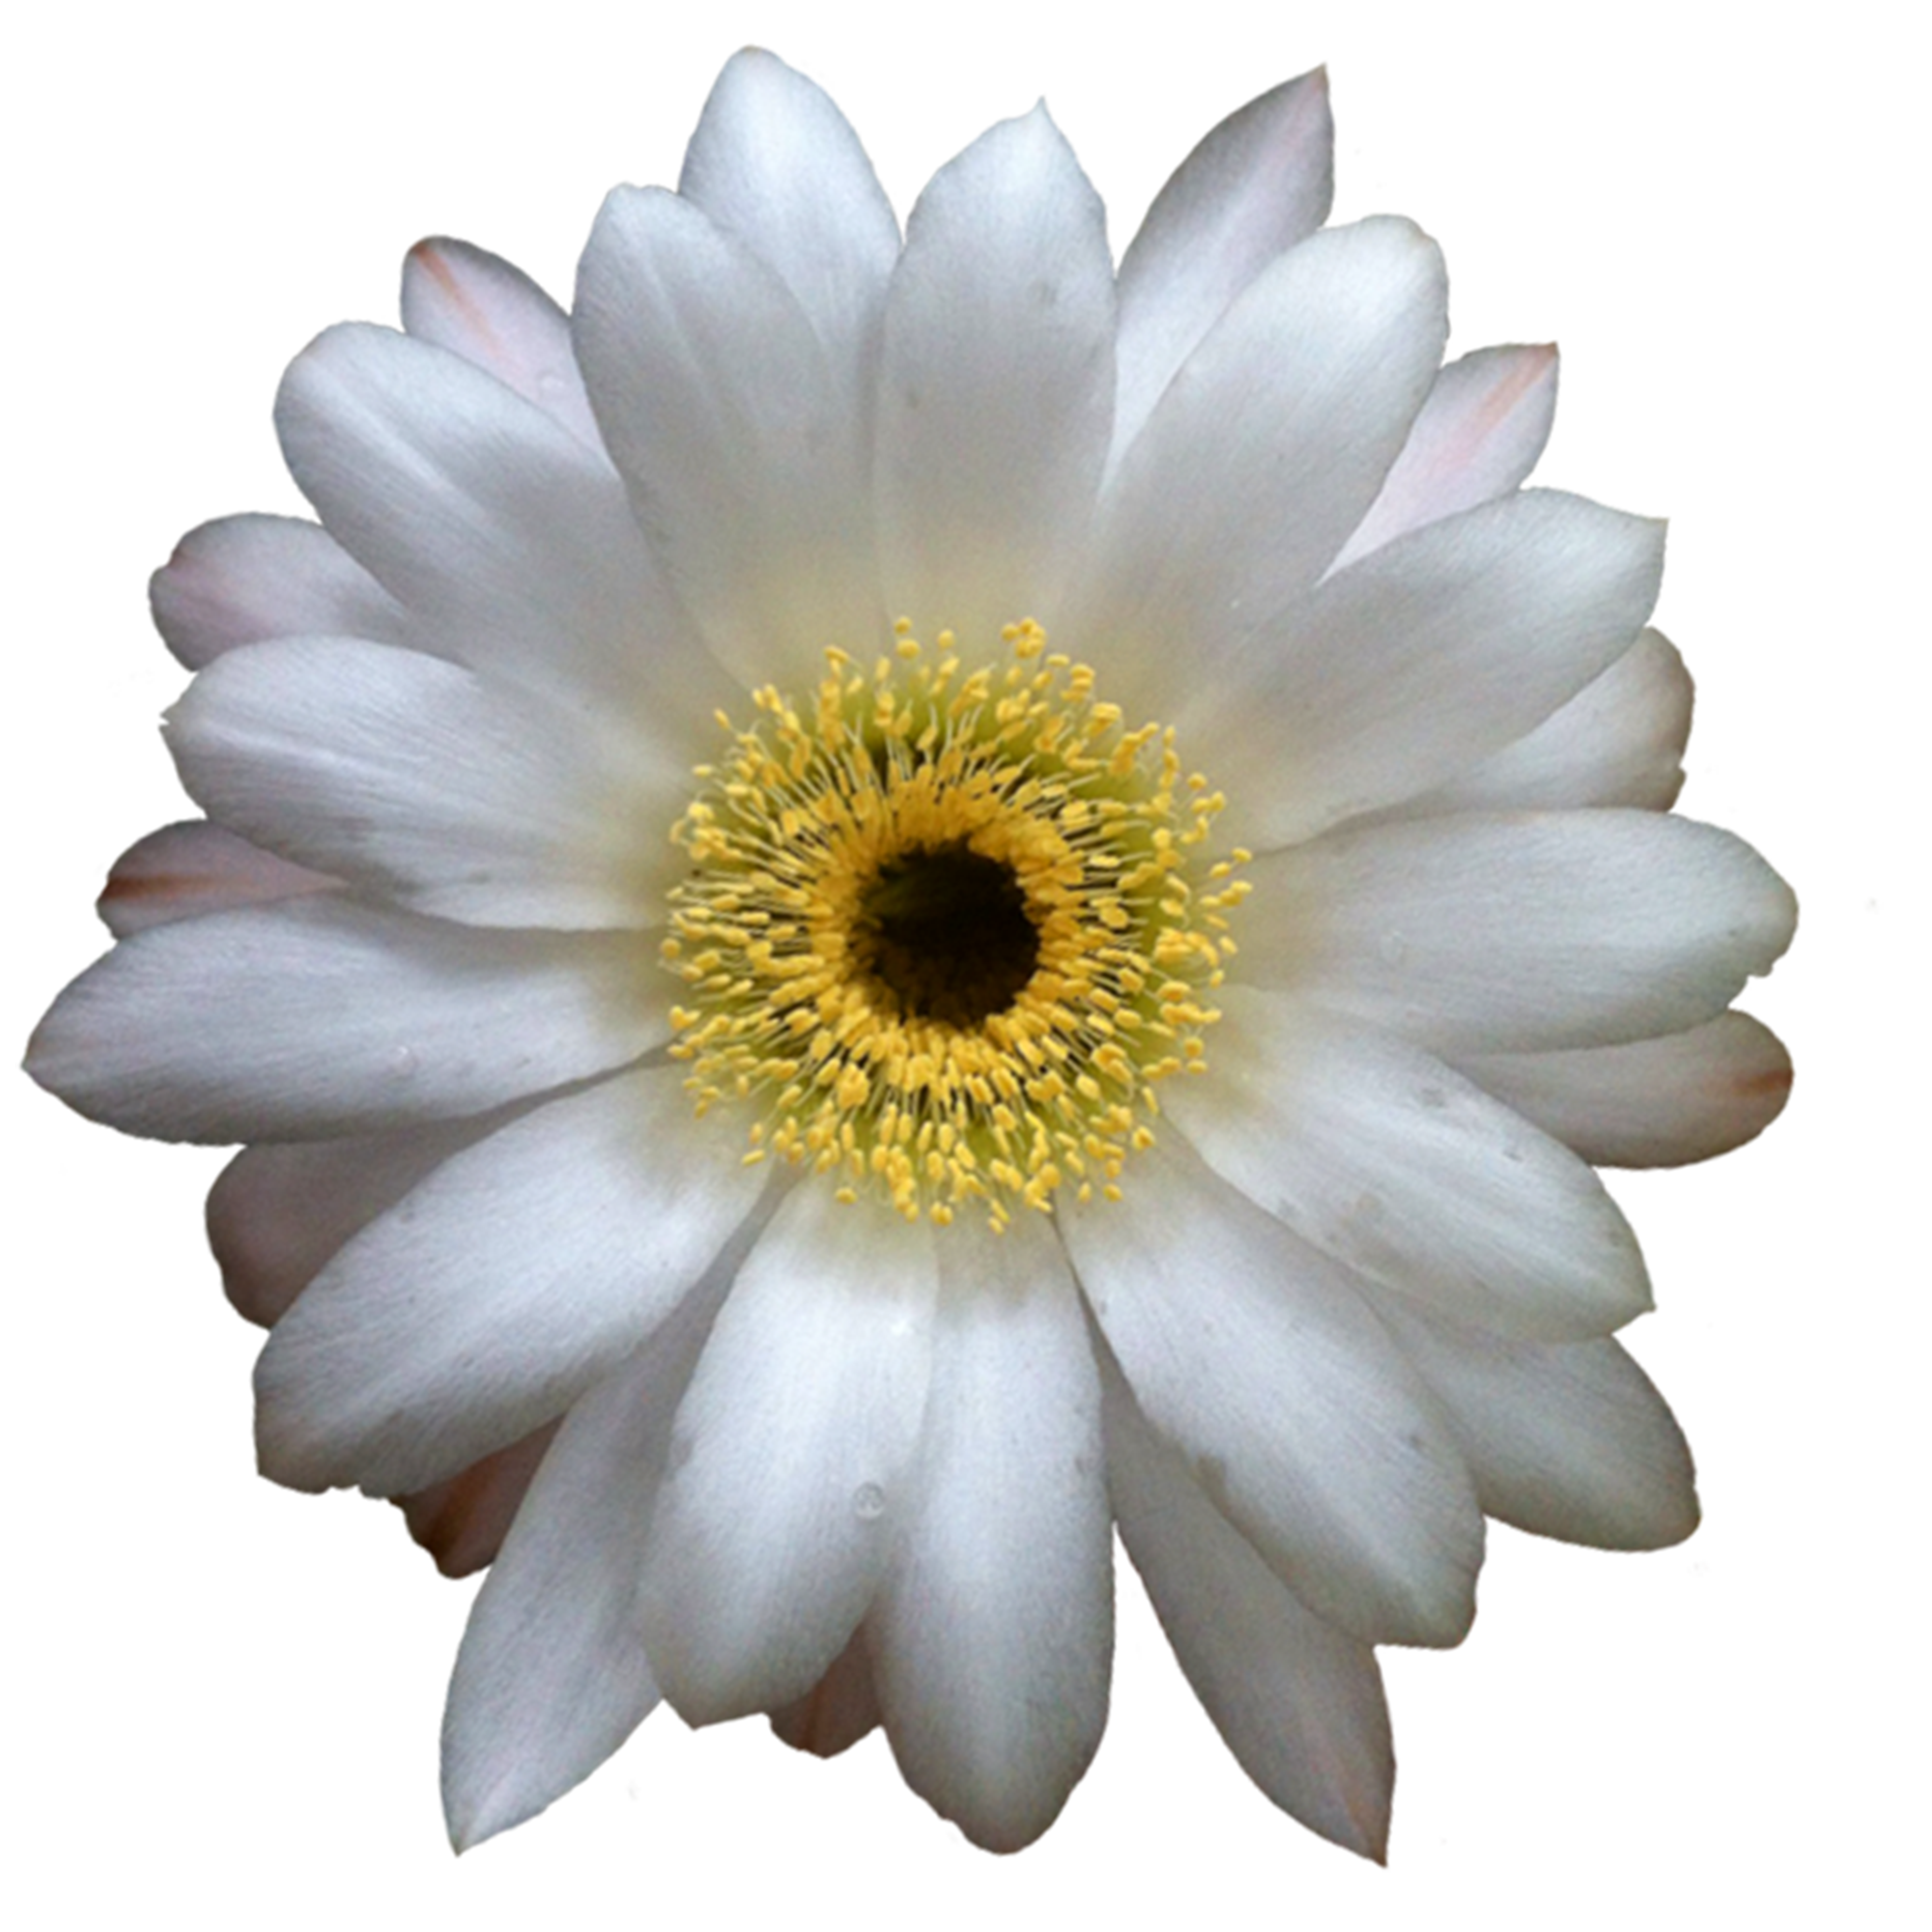 Cactus flower png #39168.